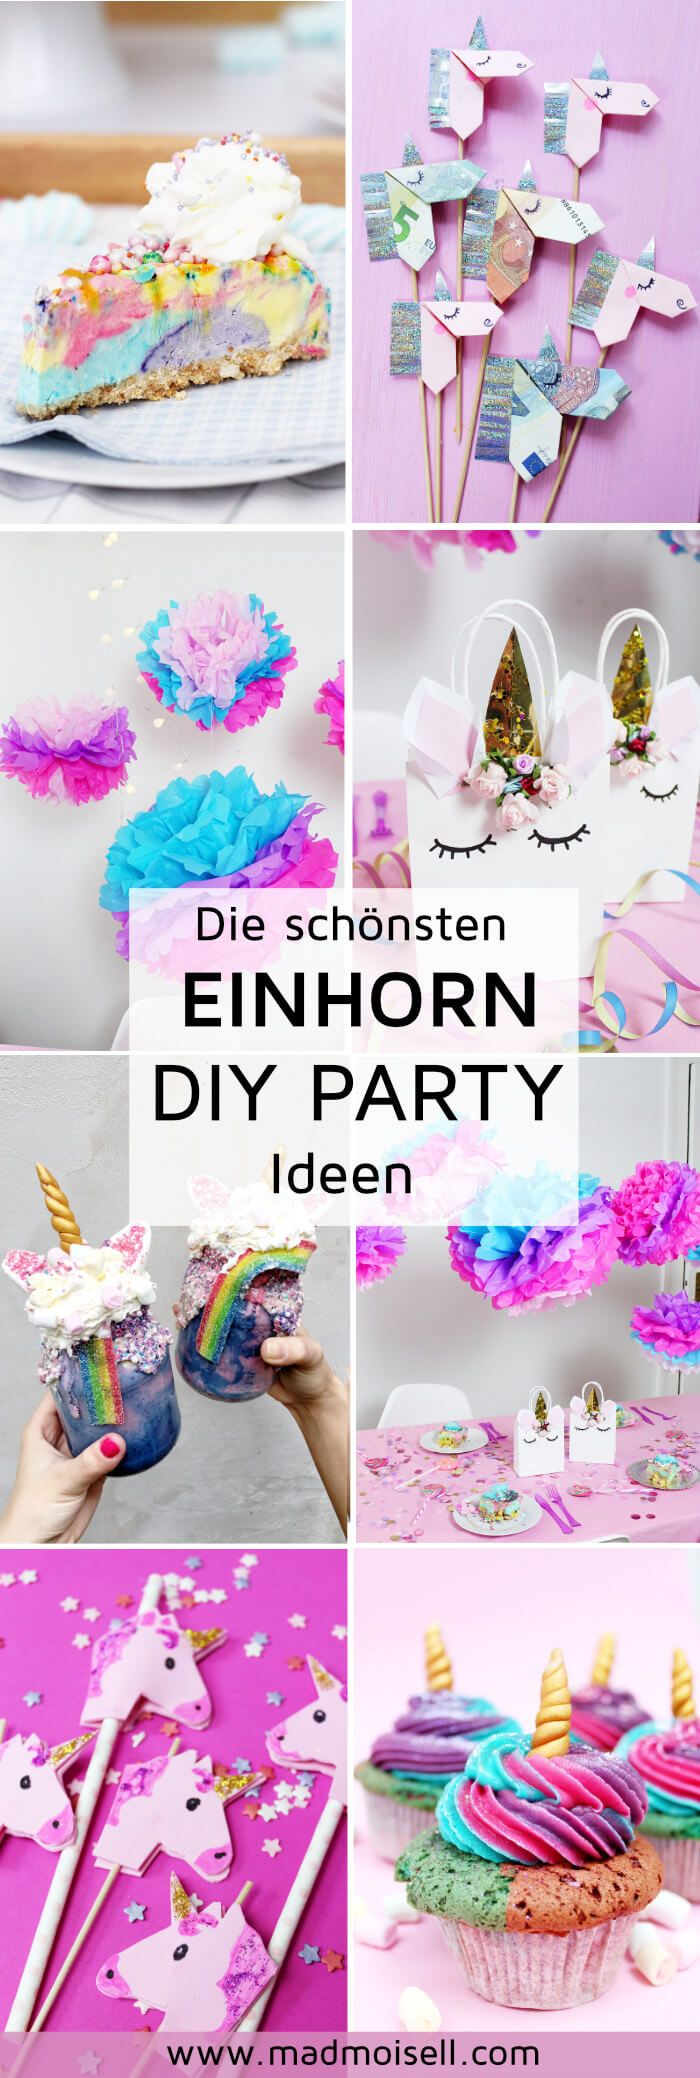 7 originelle einhorn party diy ideen zum selbermachen einhorn kuchen deko und geschenke. Black Bedroom Furniture Sets. Home Design Ideas